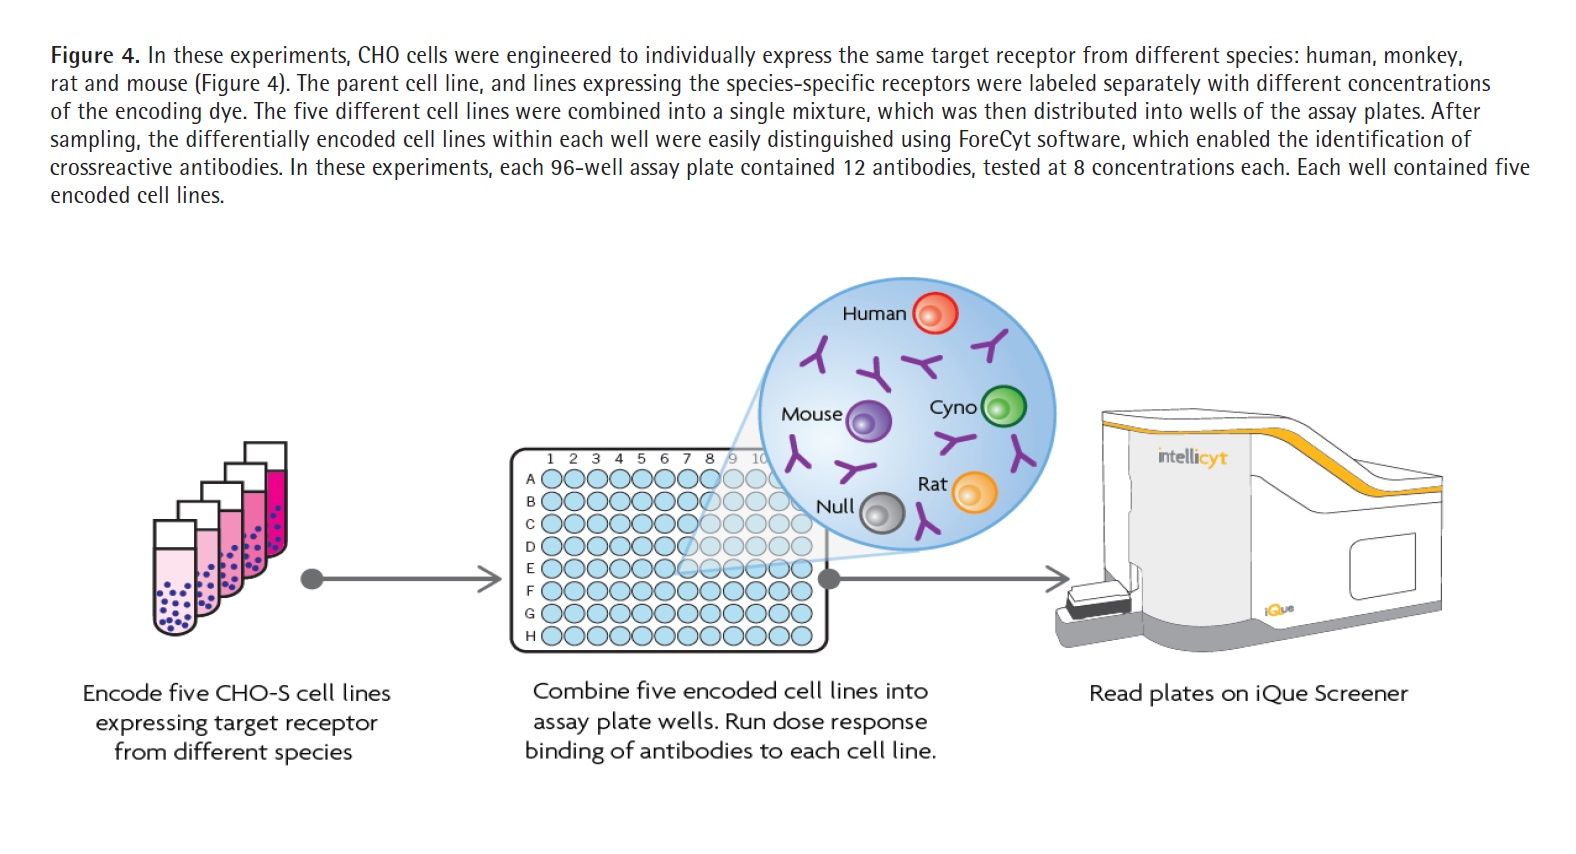 Figure 4 In these experiments, CHO cells were engineered to individually express the same target receptor from different species